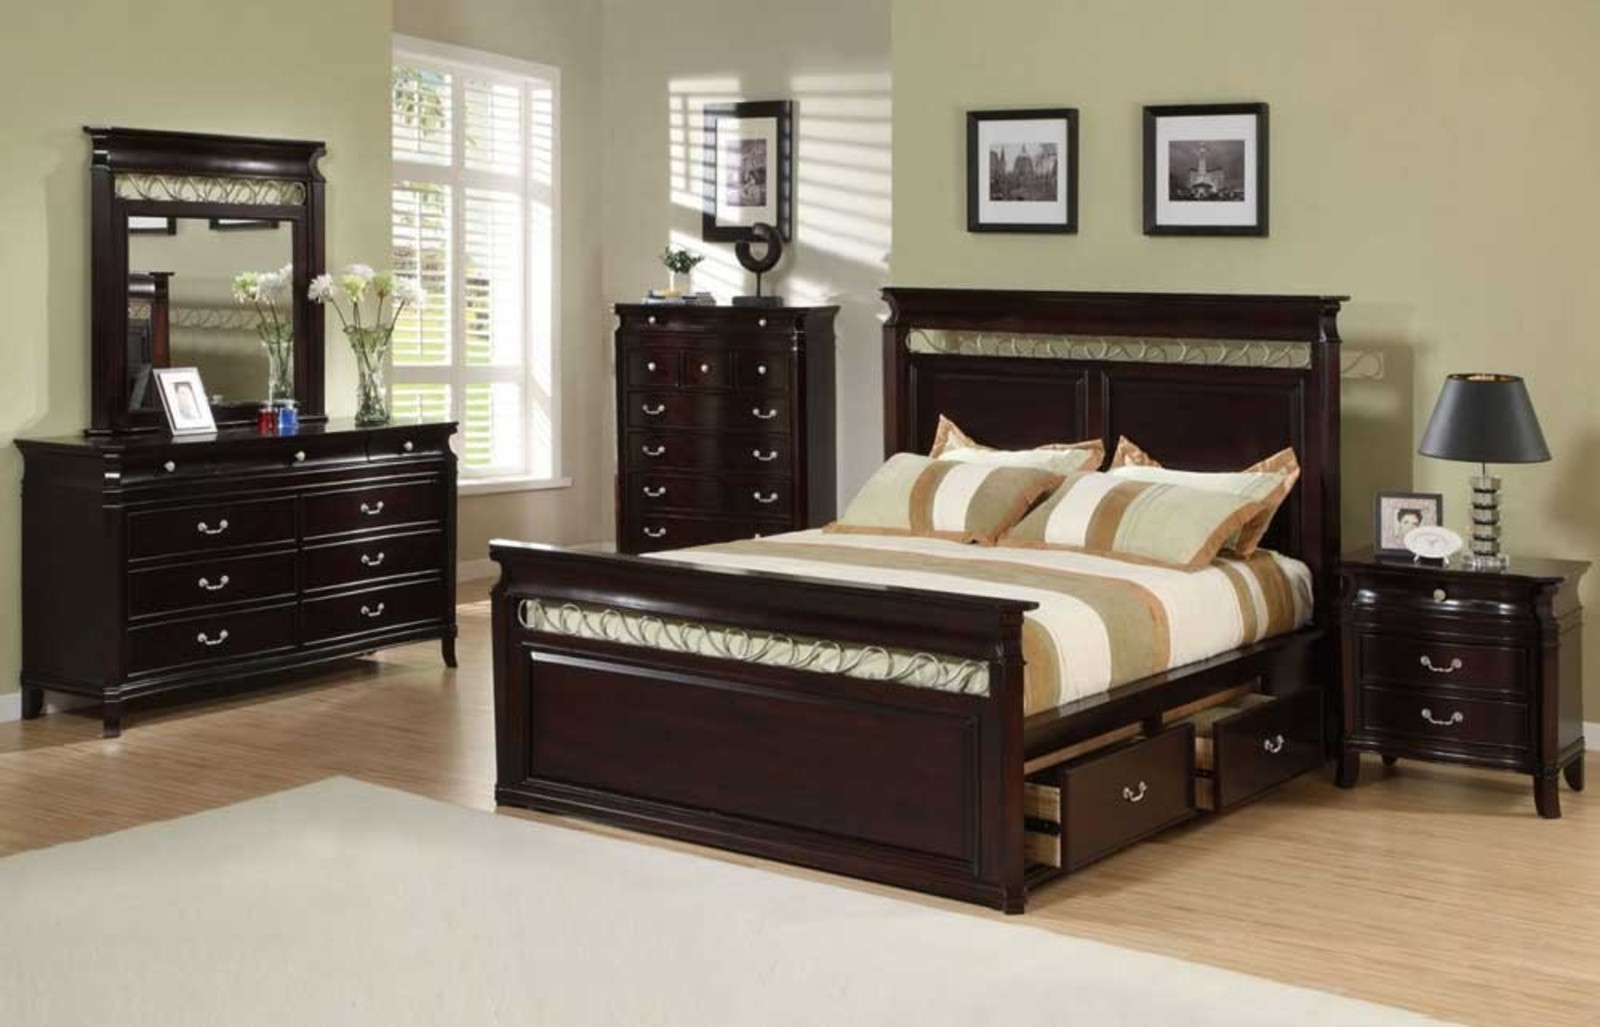 Best ideas about Bedroom Sets For Cheap . Save or Pin cheap bedroom sets with mattress Now.